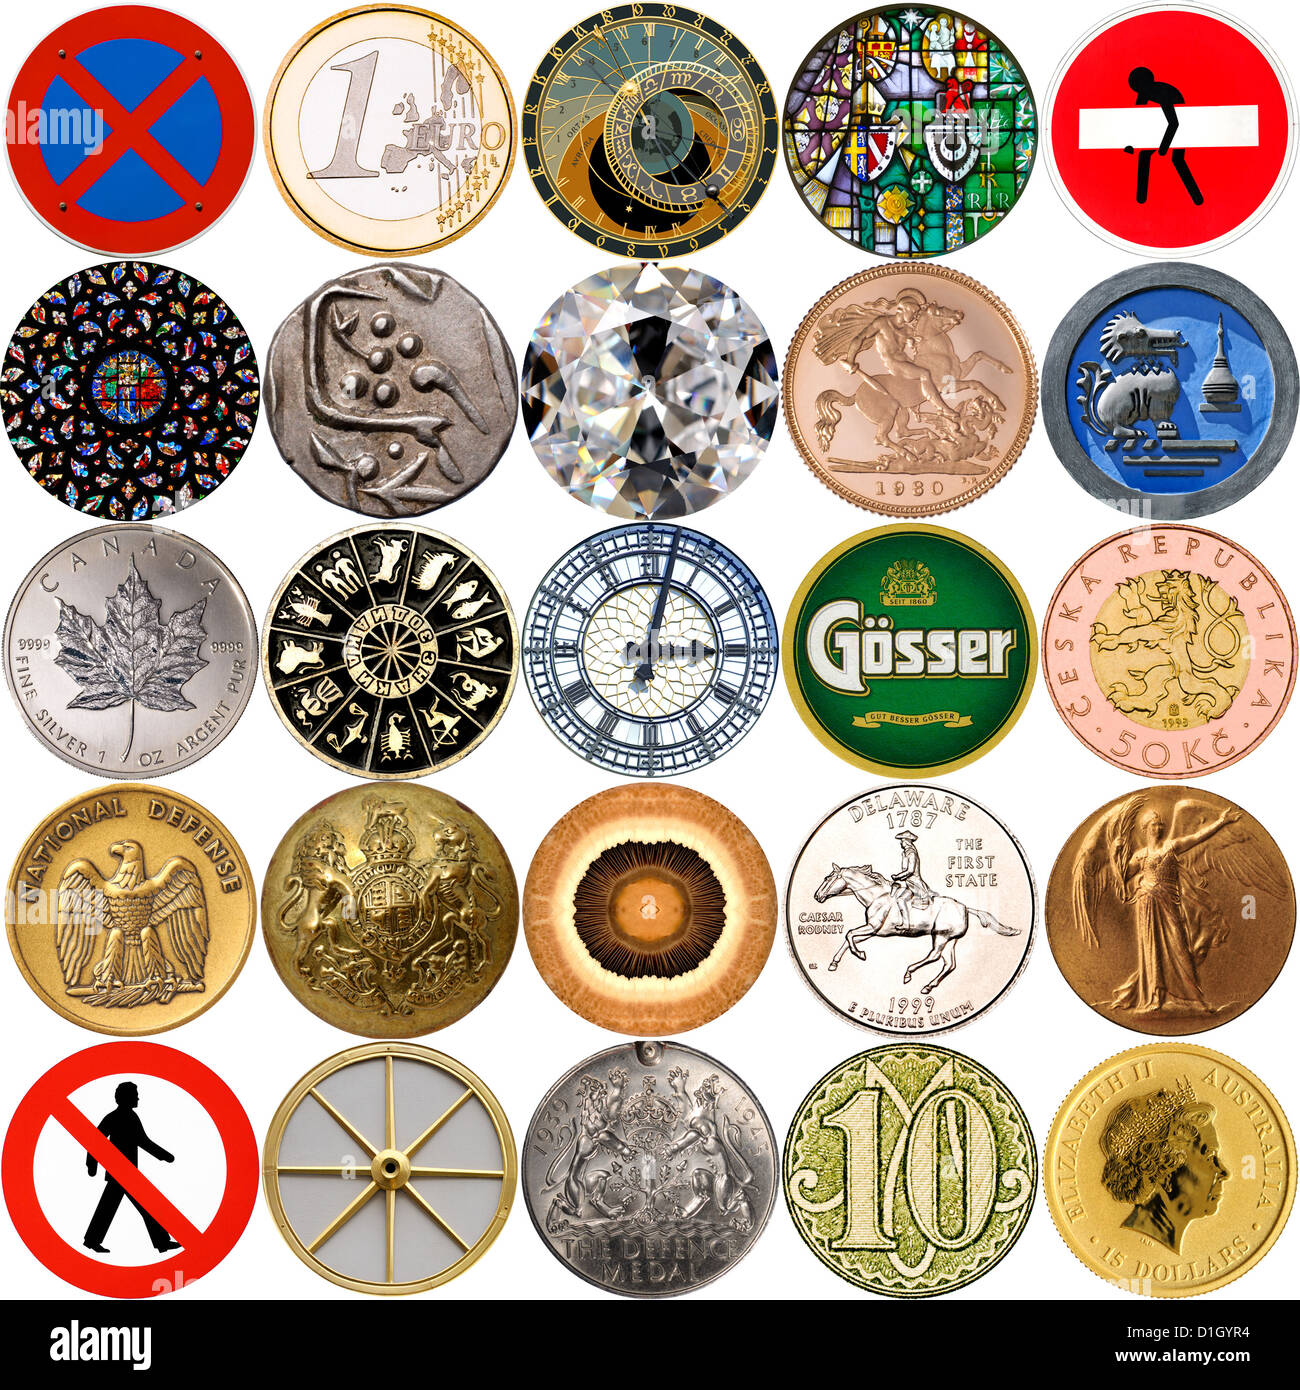 Circular Objects Related Keywords - Circular Objects Long ...